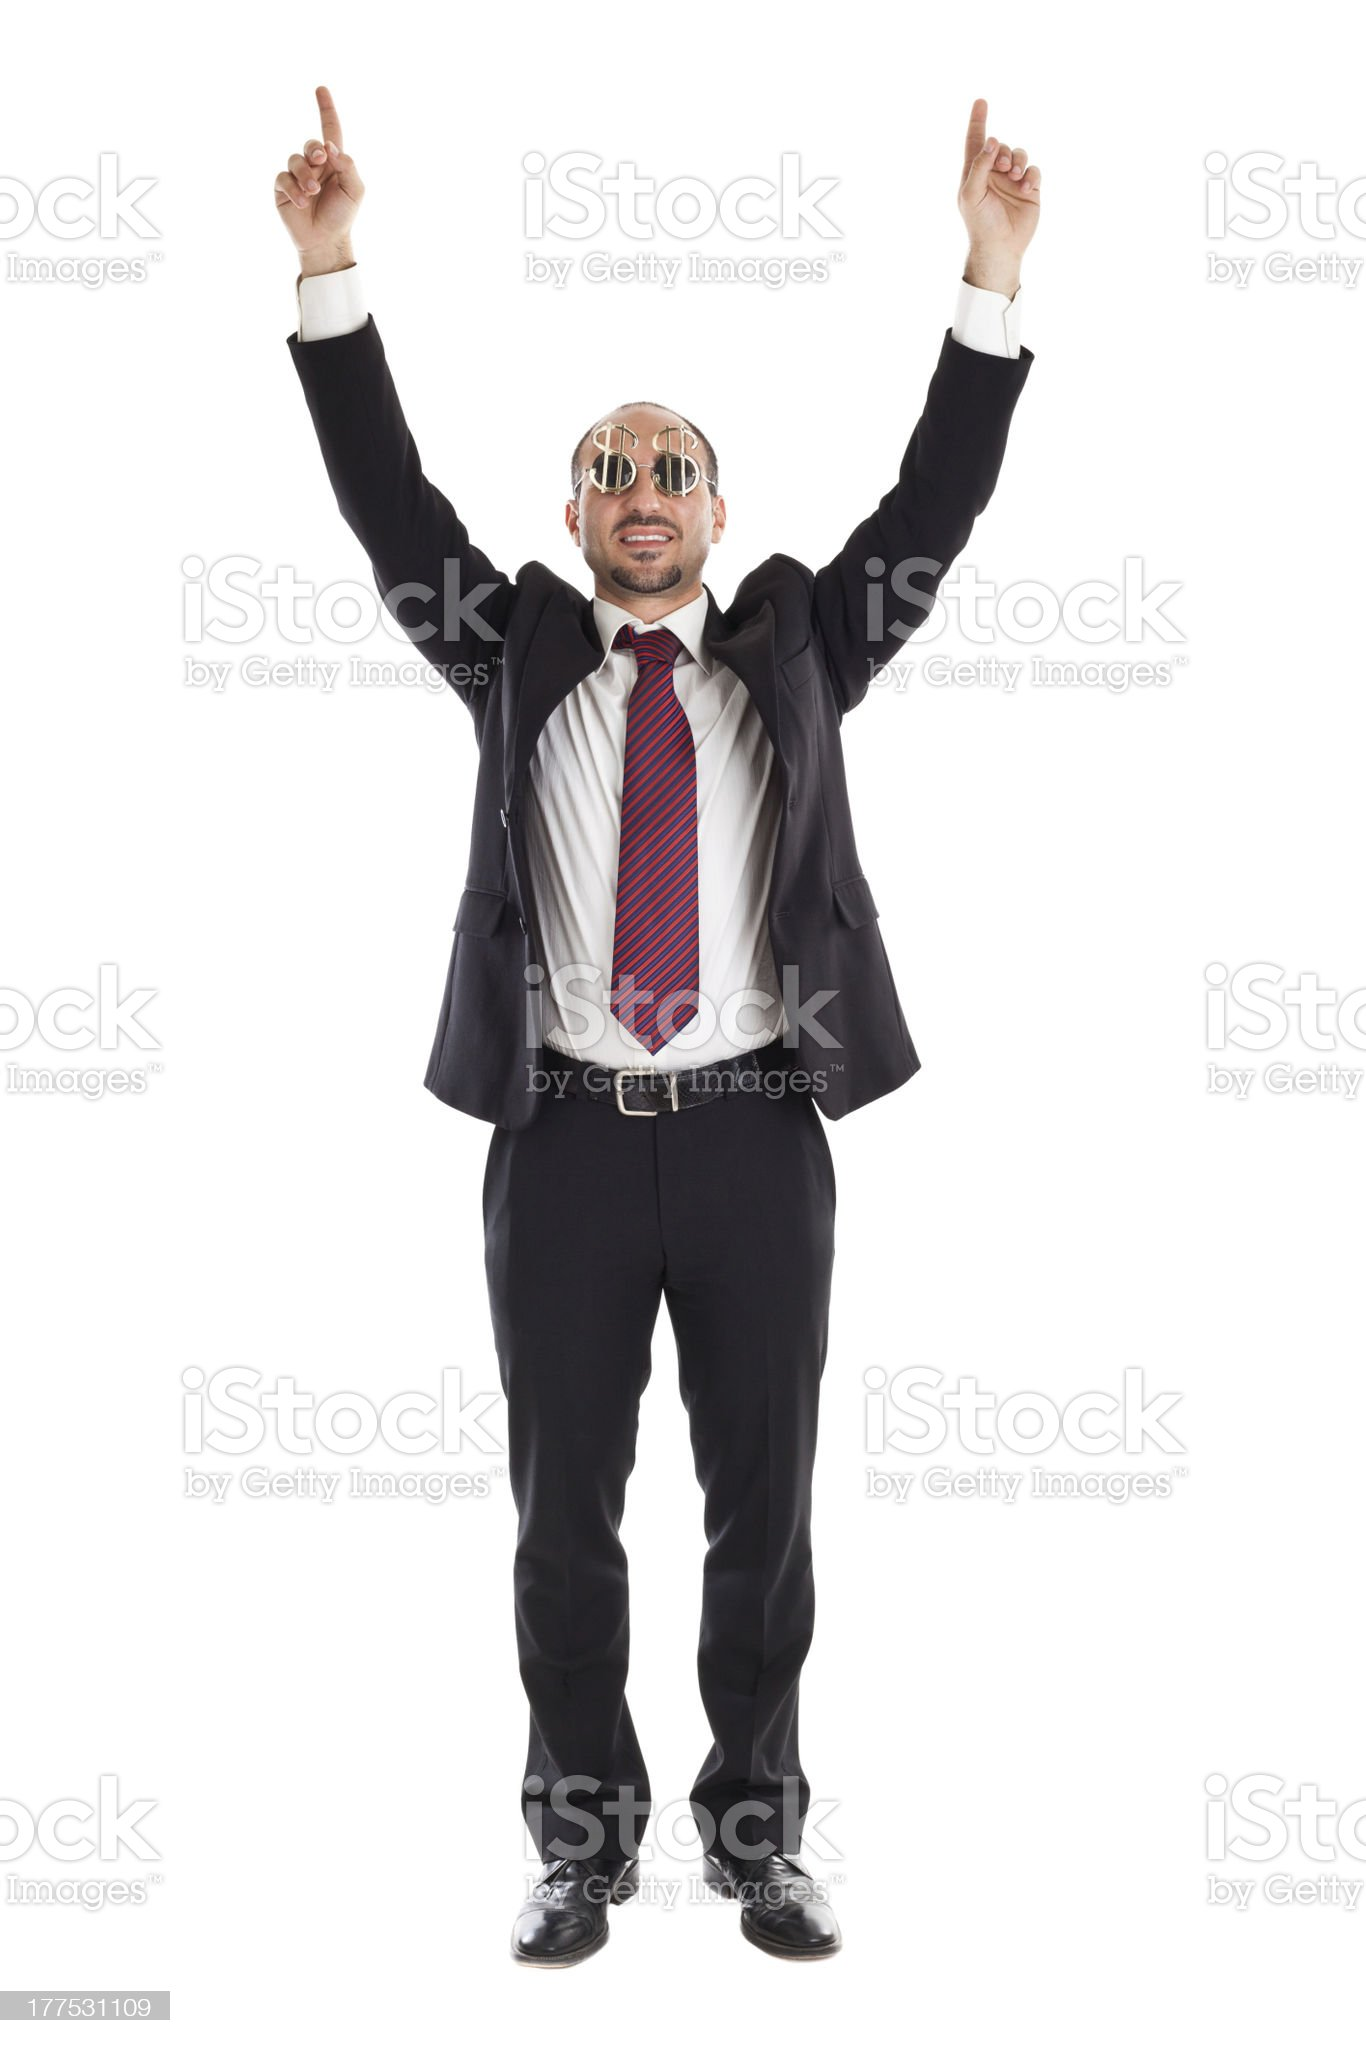 Top Earner royalty-free stock photo